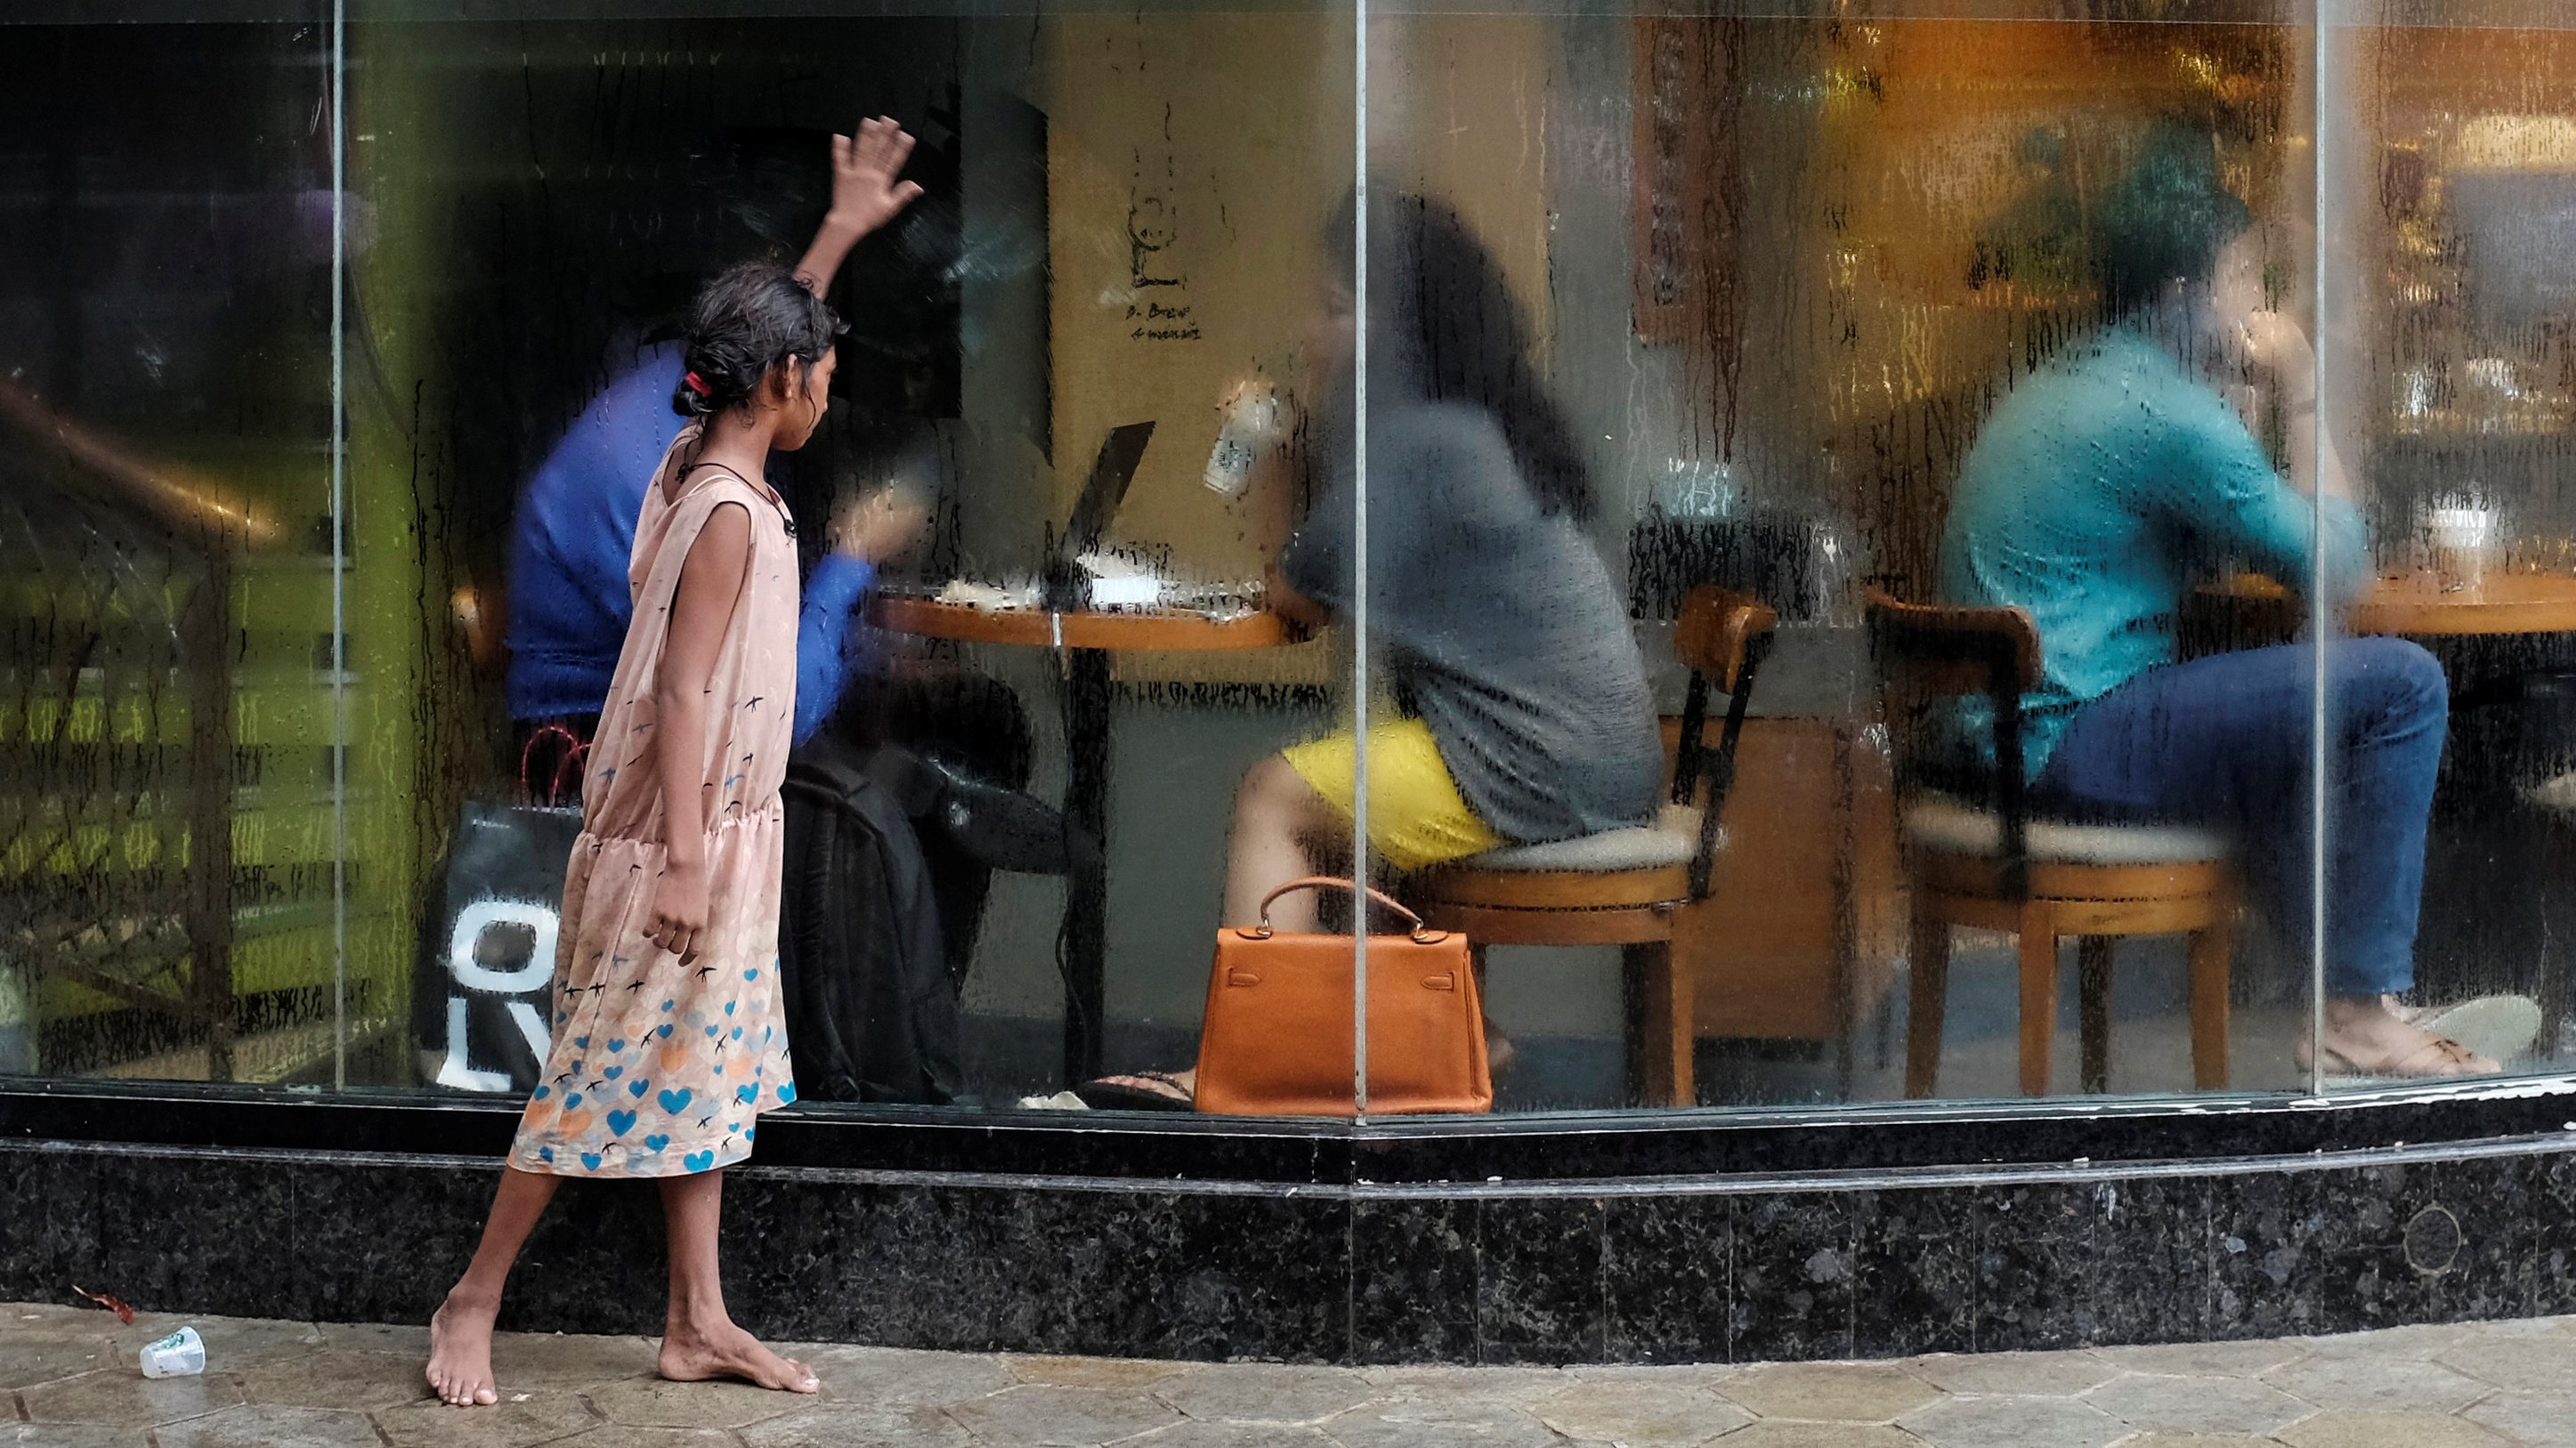 A homeless girl asks for alms outside a coffee shop in Mumbai, India, June 24, 2016. REUTERS/Danish Siddiqui - D1BETLTHEXAA